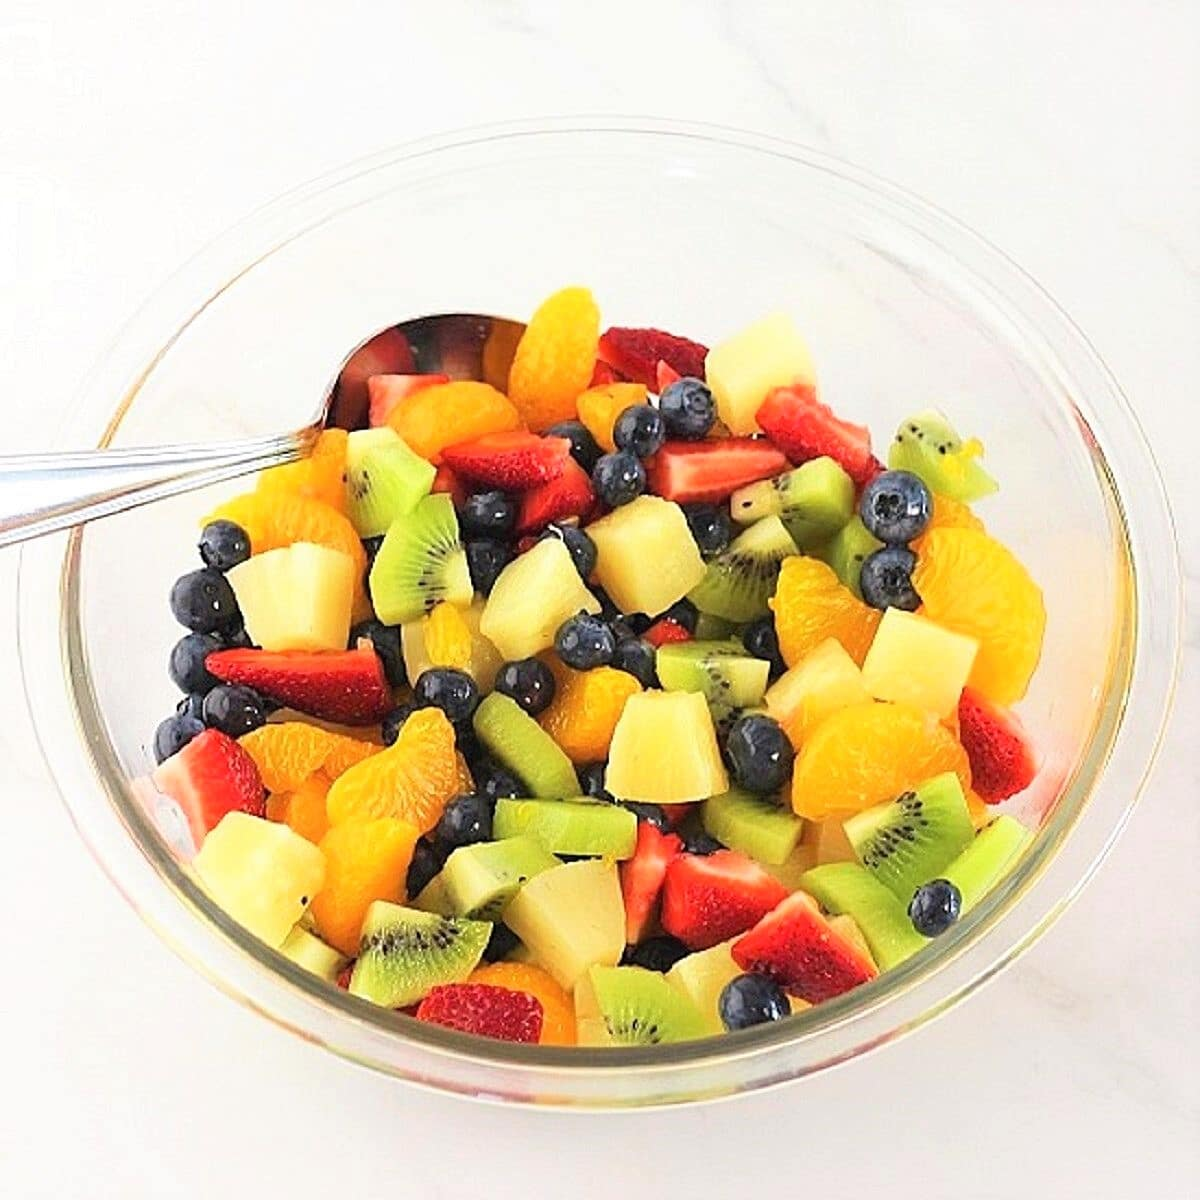 chopped strawberries, blueberries, sliced kiwi, pineapple chunks, and mandarin oranges tossed together in a bowl with a spoon